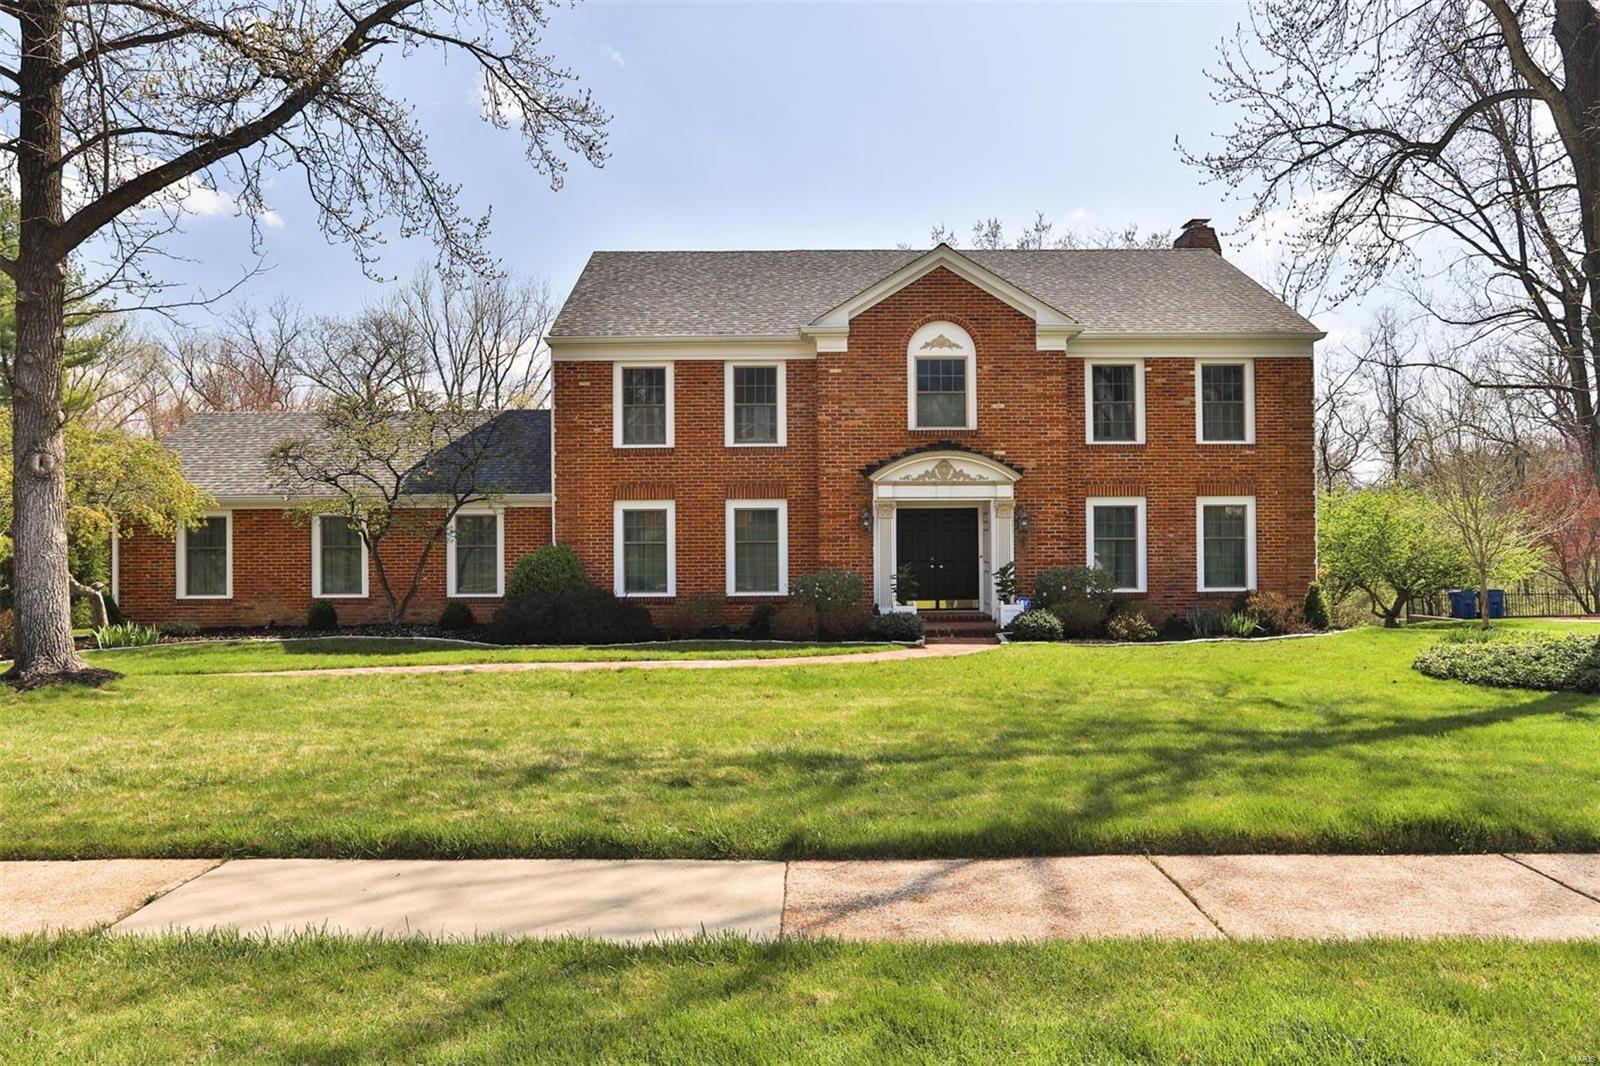 454 Twin Creek Property Photo - Creve Coeur, MO real estate listing